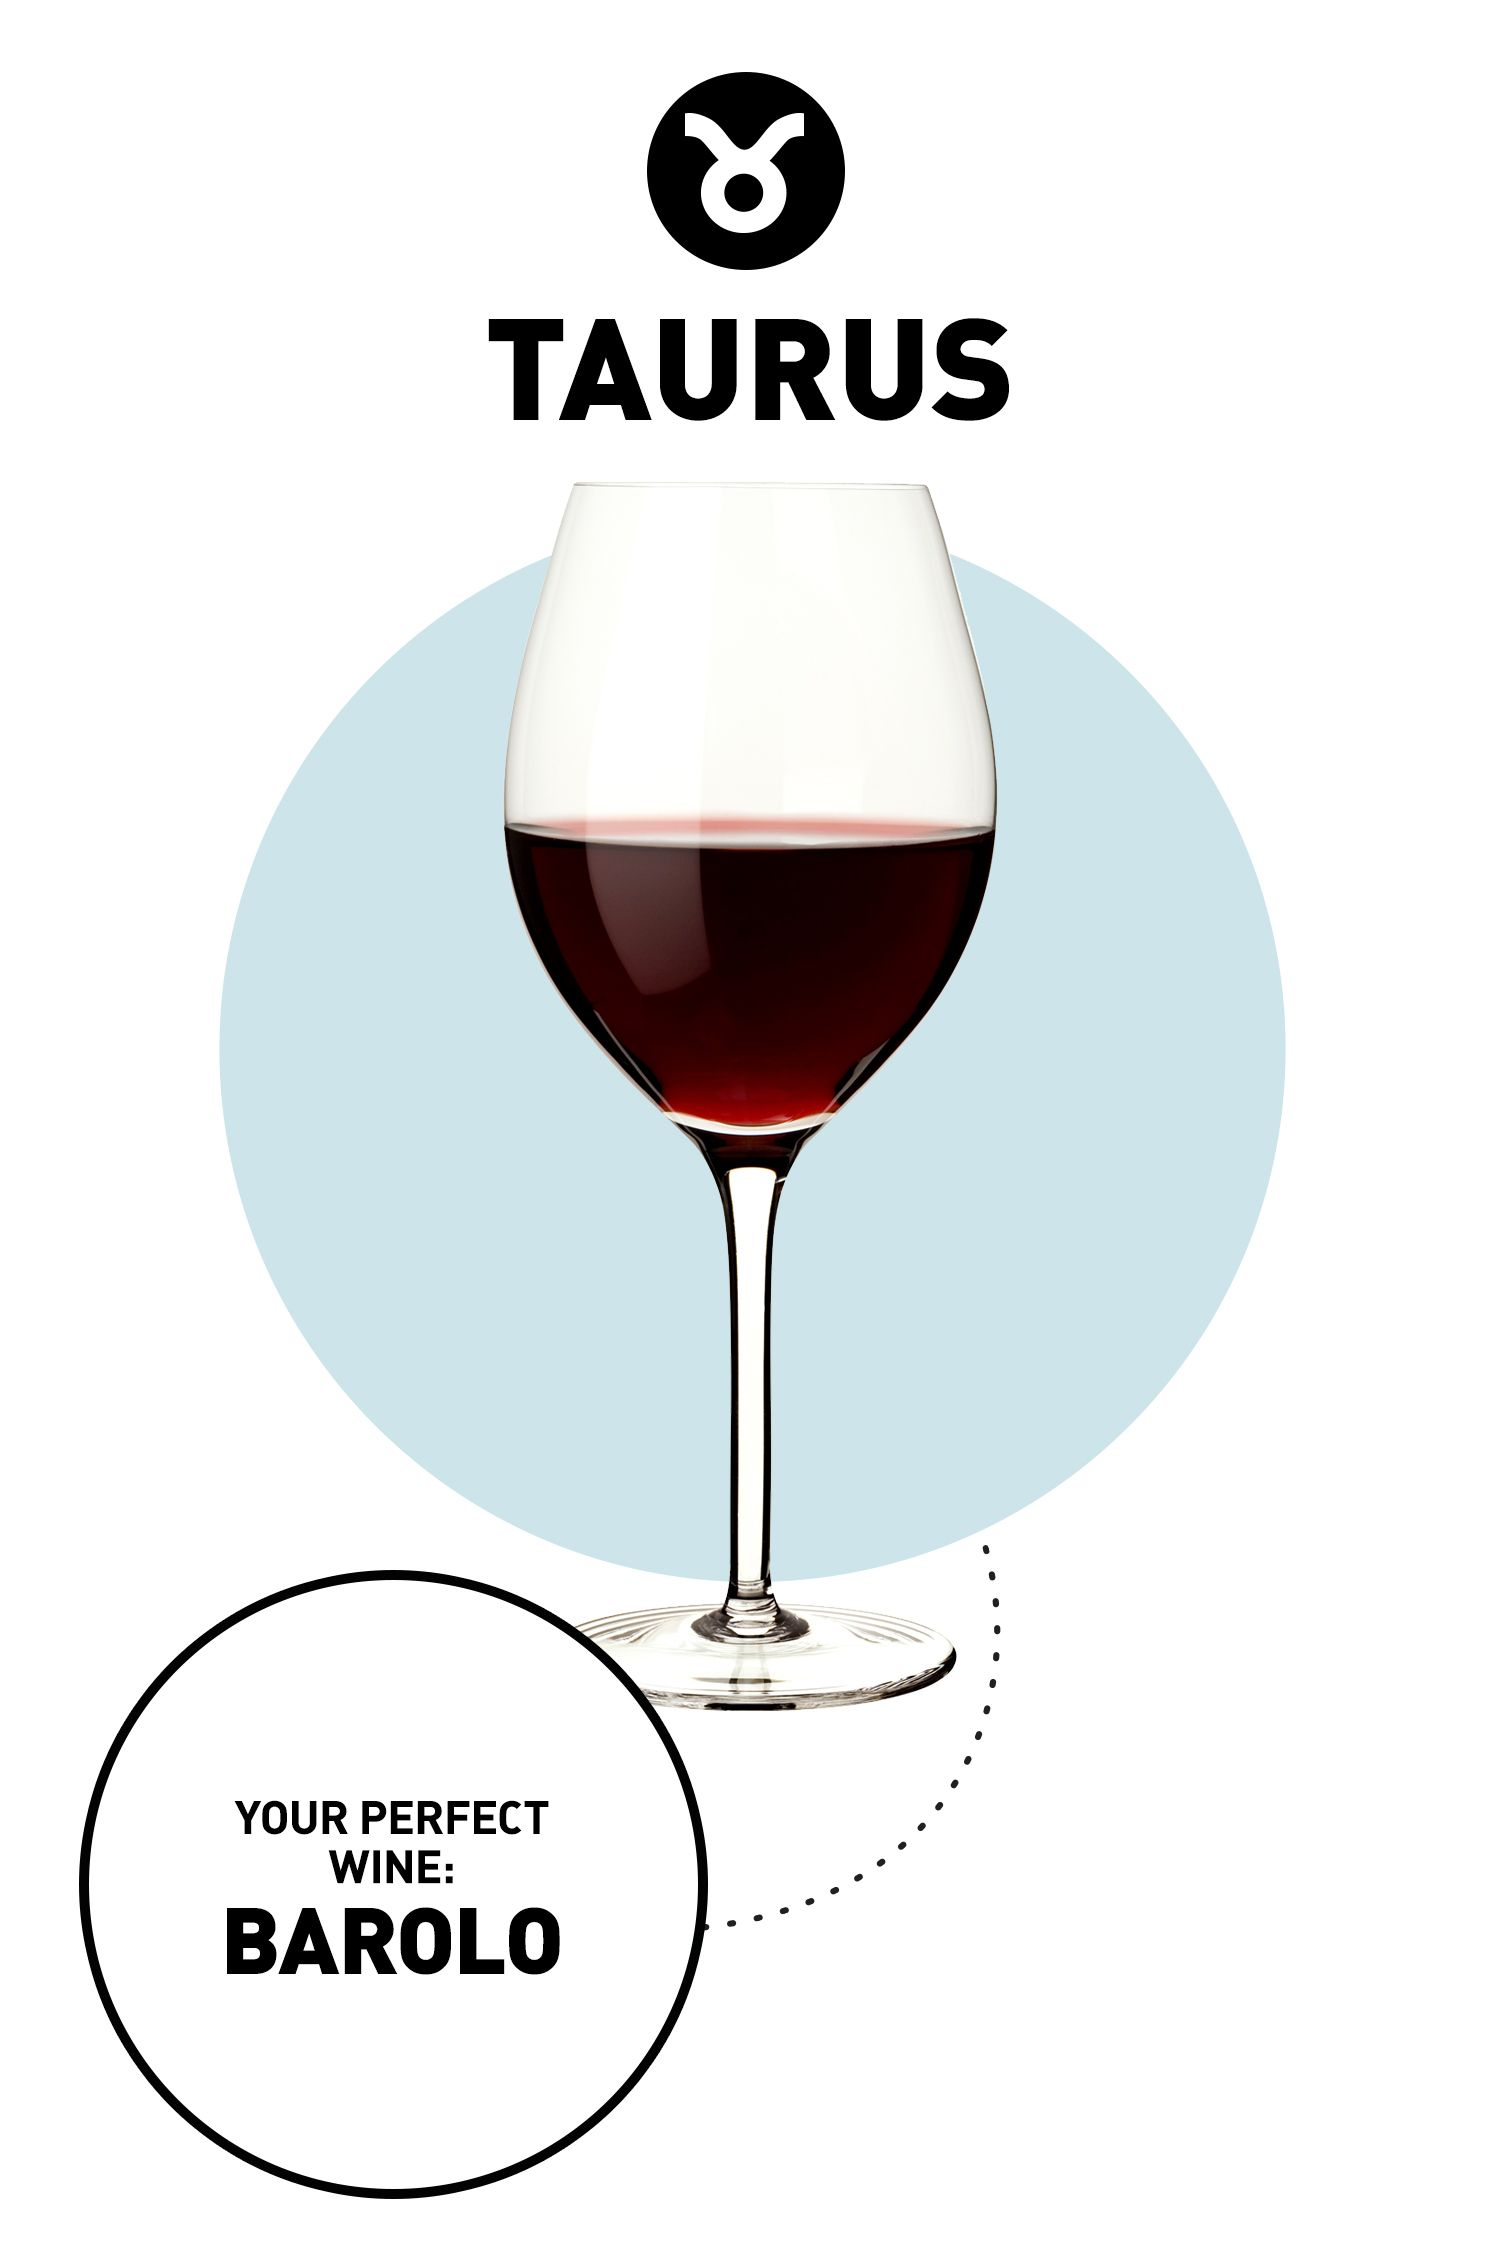 """<p><strong></strong><strong>Your Drink: </strong>Barolo</p><p class=""""MsoNormal""""><o:p></o:p></p><p class=""""MsoNormal""""><strong>Why: </strong>You understand that you can't rush perfection—and let's be real: You enjoy the finer things in life when you can—which makes this old-world wine ideal for you. Often called the """"King of Wines,"""" Barolo is stored for three years before it's sold, which brings out the drink's spicy, fruity flavor. (Plus, like you, it ages well: Ross says some of today's most popular vintages were bottled back in 1998.)</p>"""